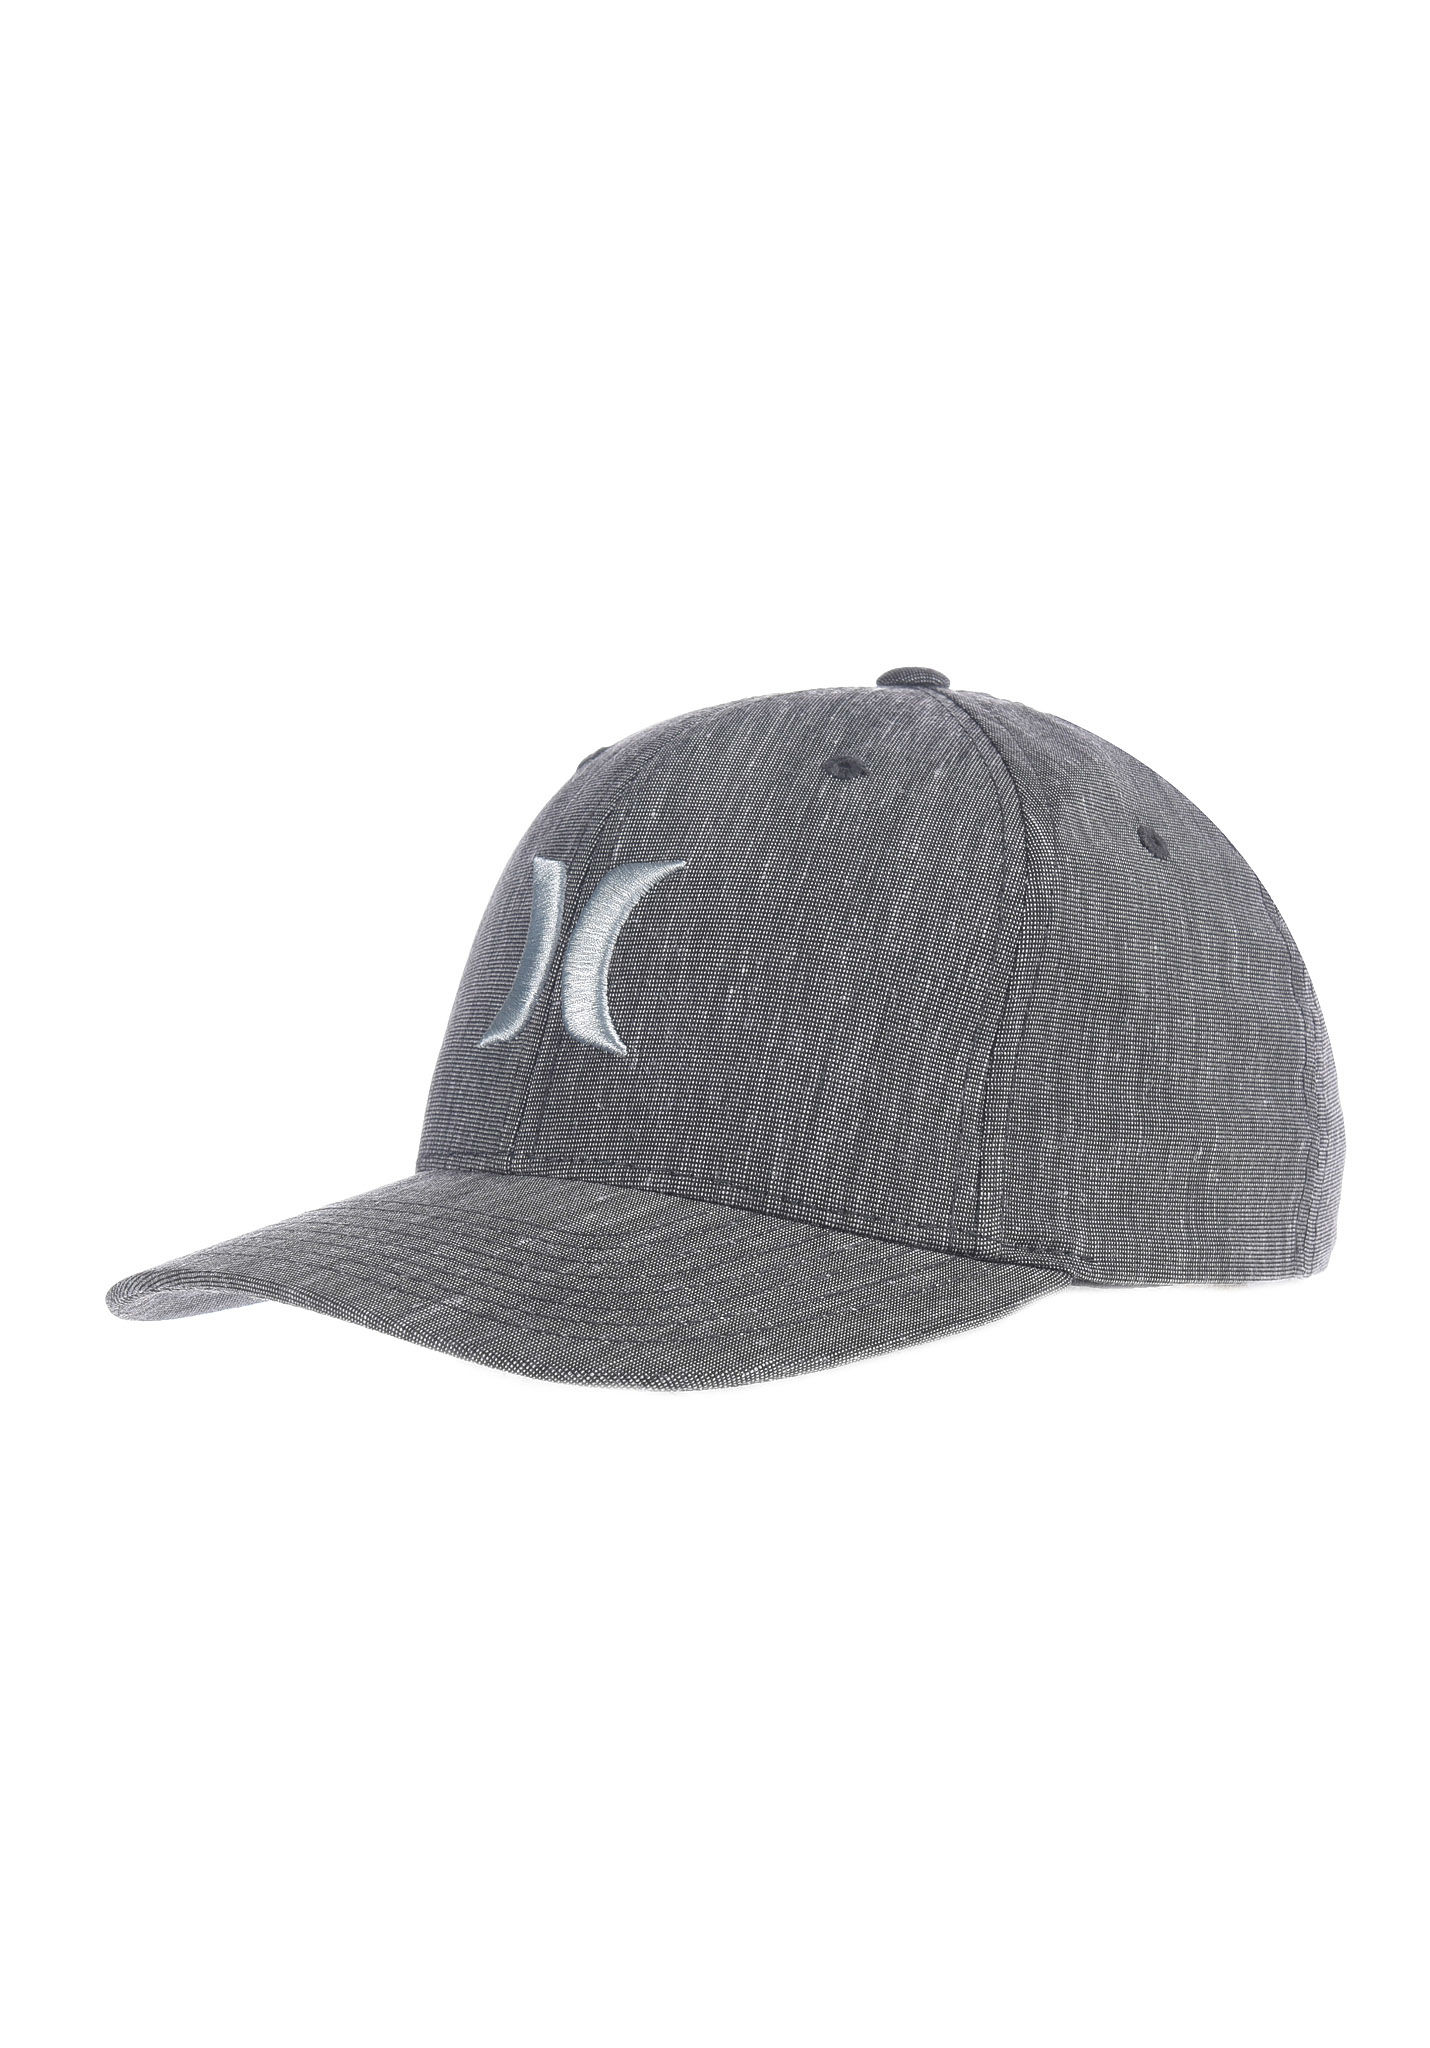 Hurley Black Suits - Flexfit Cap for Men - Grey - Planet Sports 2b01e021219b